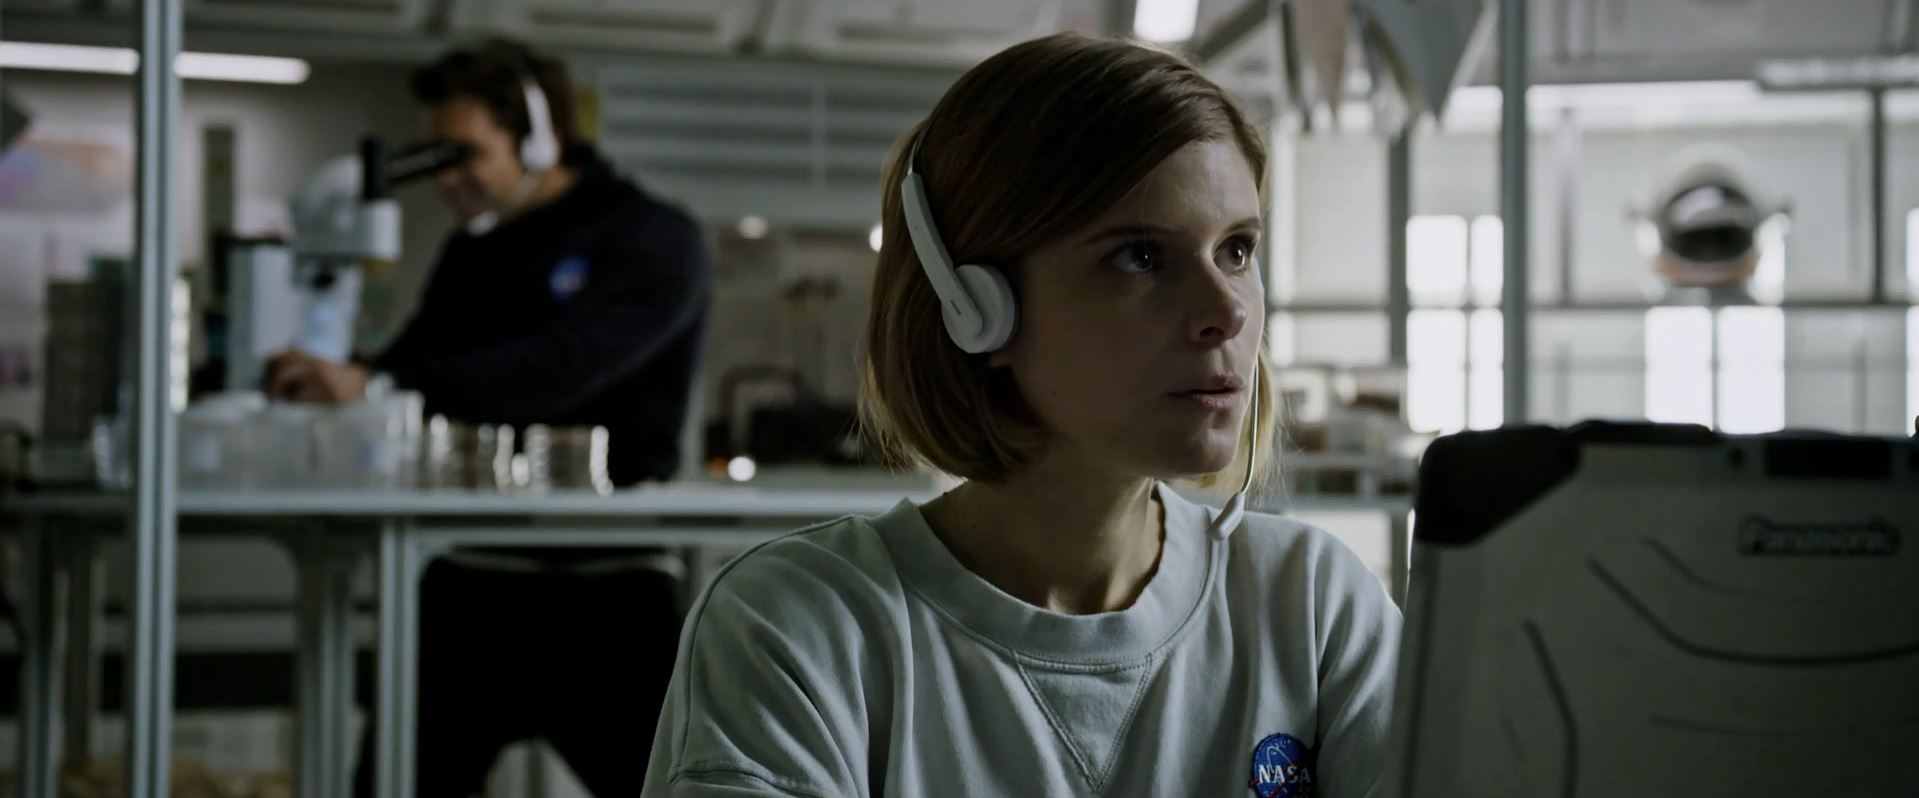 Kate Mara as Beth Johanssen in The Martian